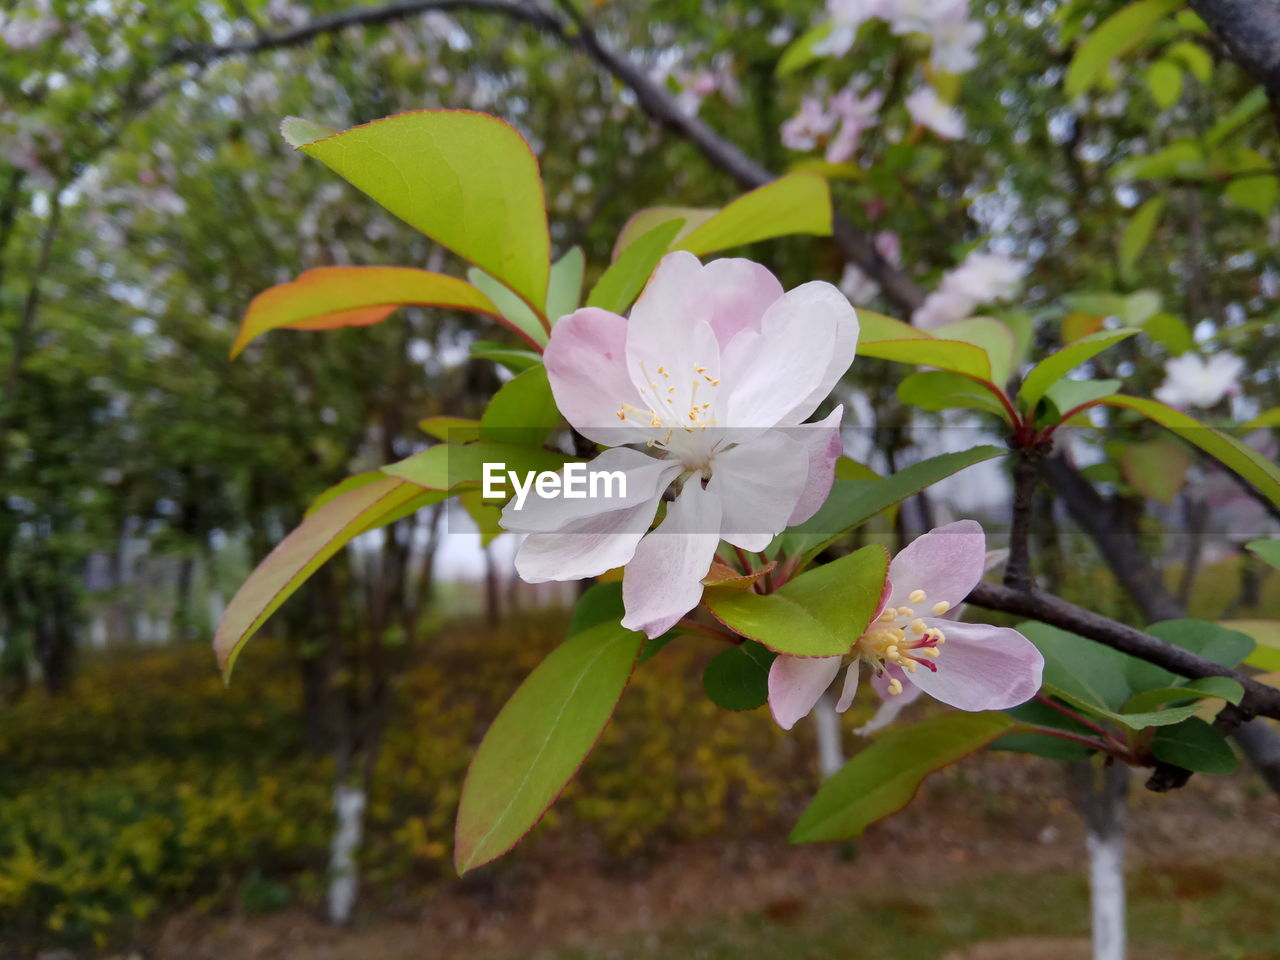 flower, fragility, growth, petal, beauty in nature, nature, freshness, flower head, blossom, tree, springtime, no people, botany, branch, stamen, close-up, leaf, day, blooming, outdoors